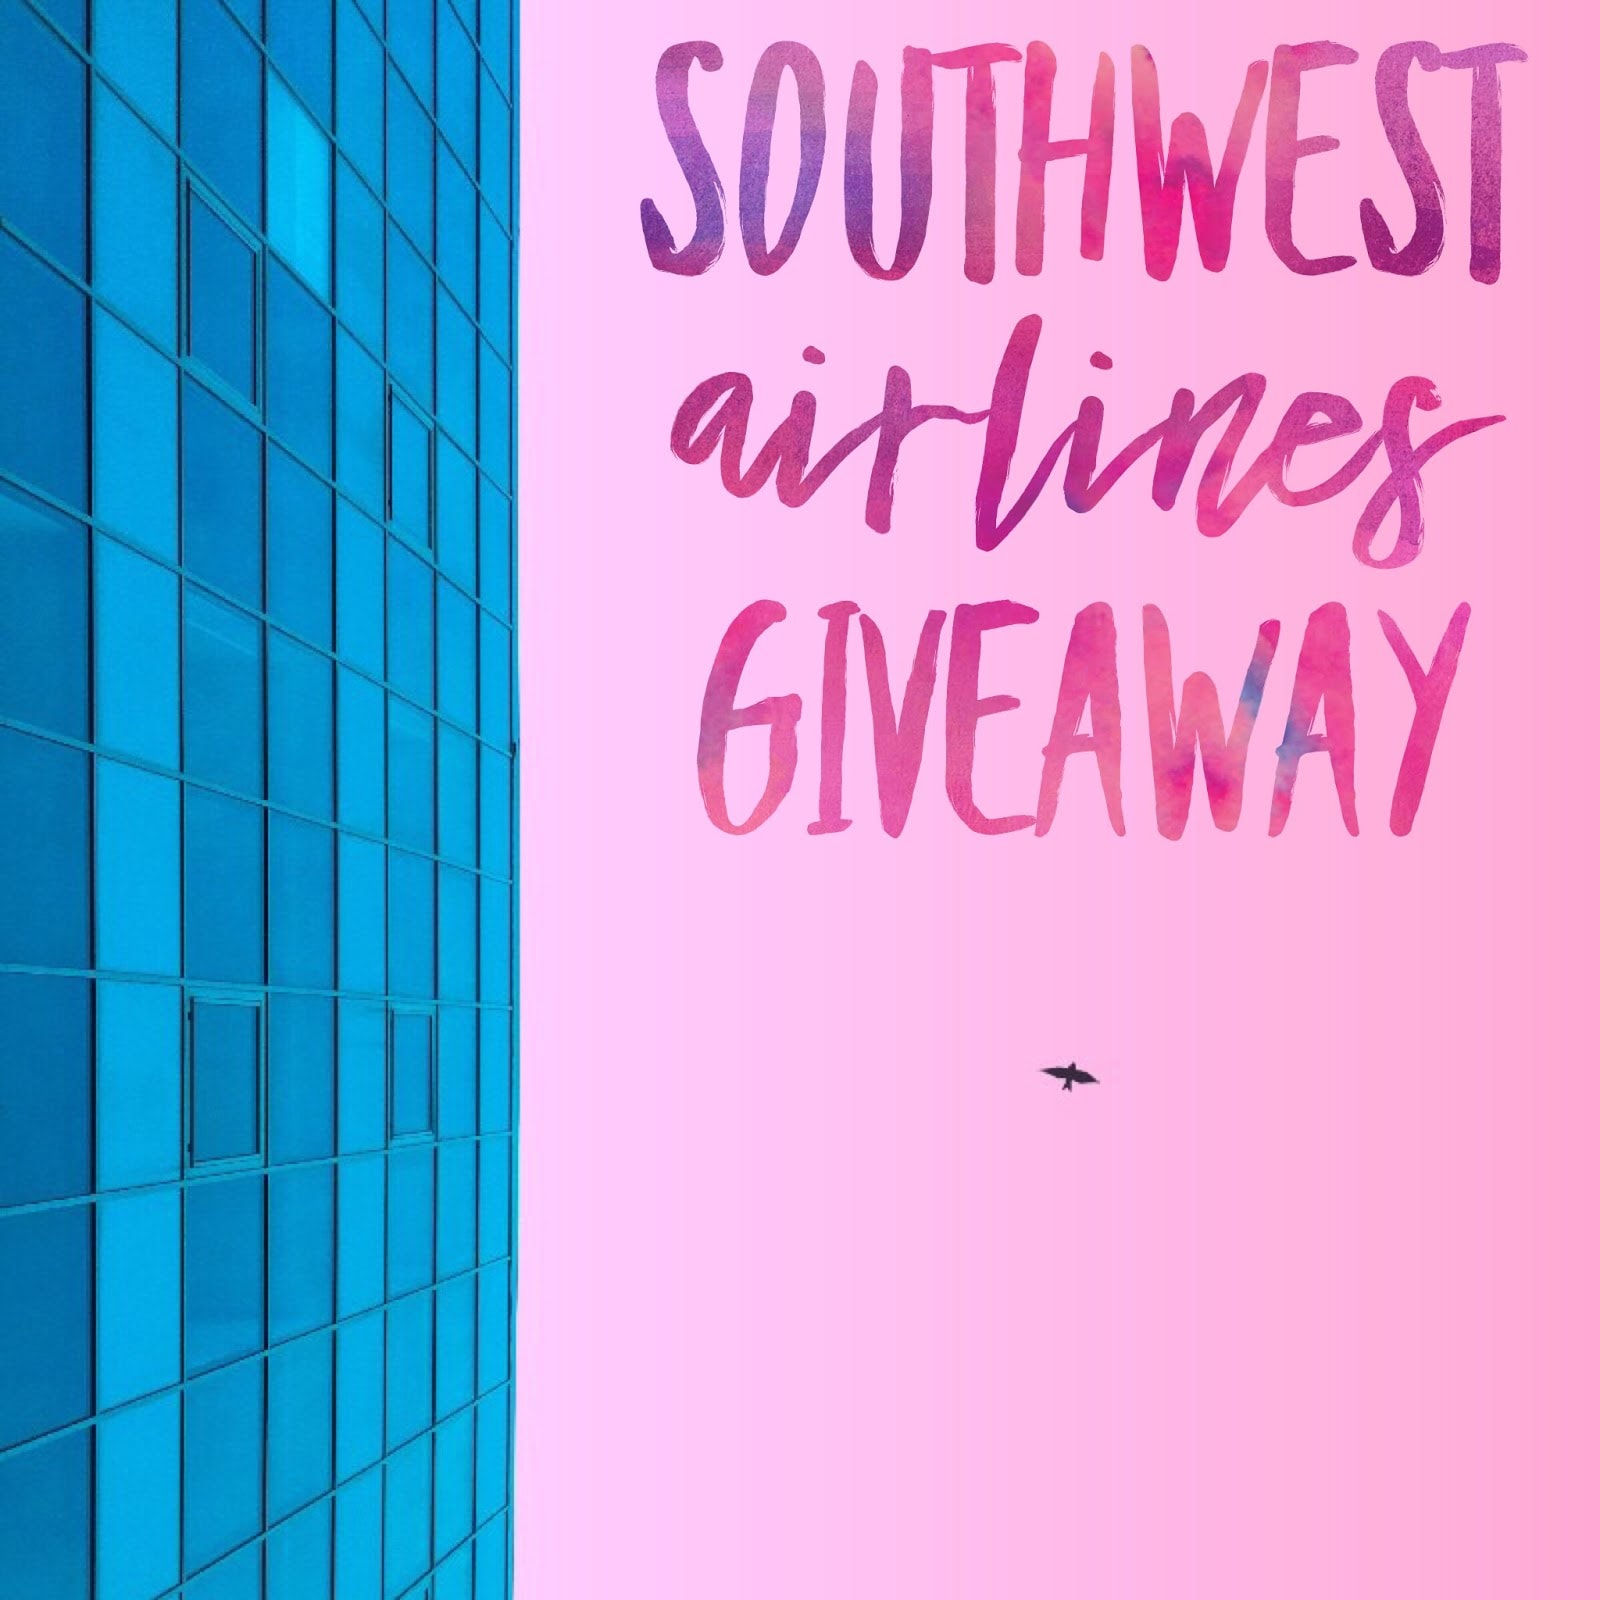 April Southwest Airlines Giveaway ends May 17, 2018